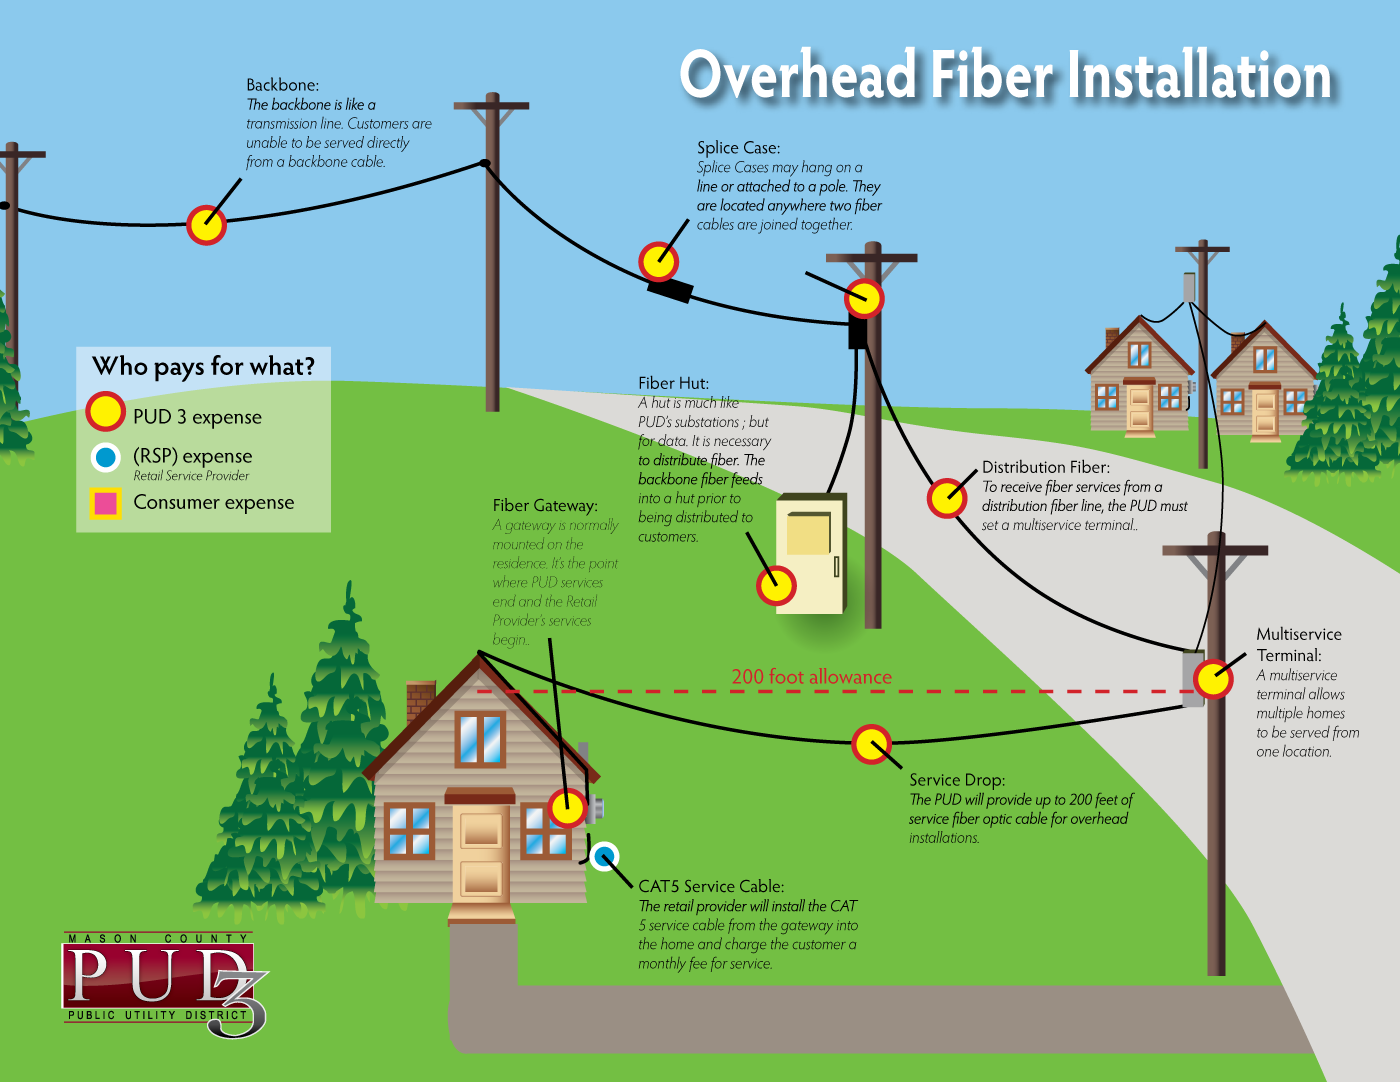 overhead fiber service Lighting System Wiring Diagram Outdoor Wiring Basics